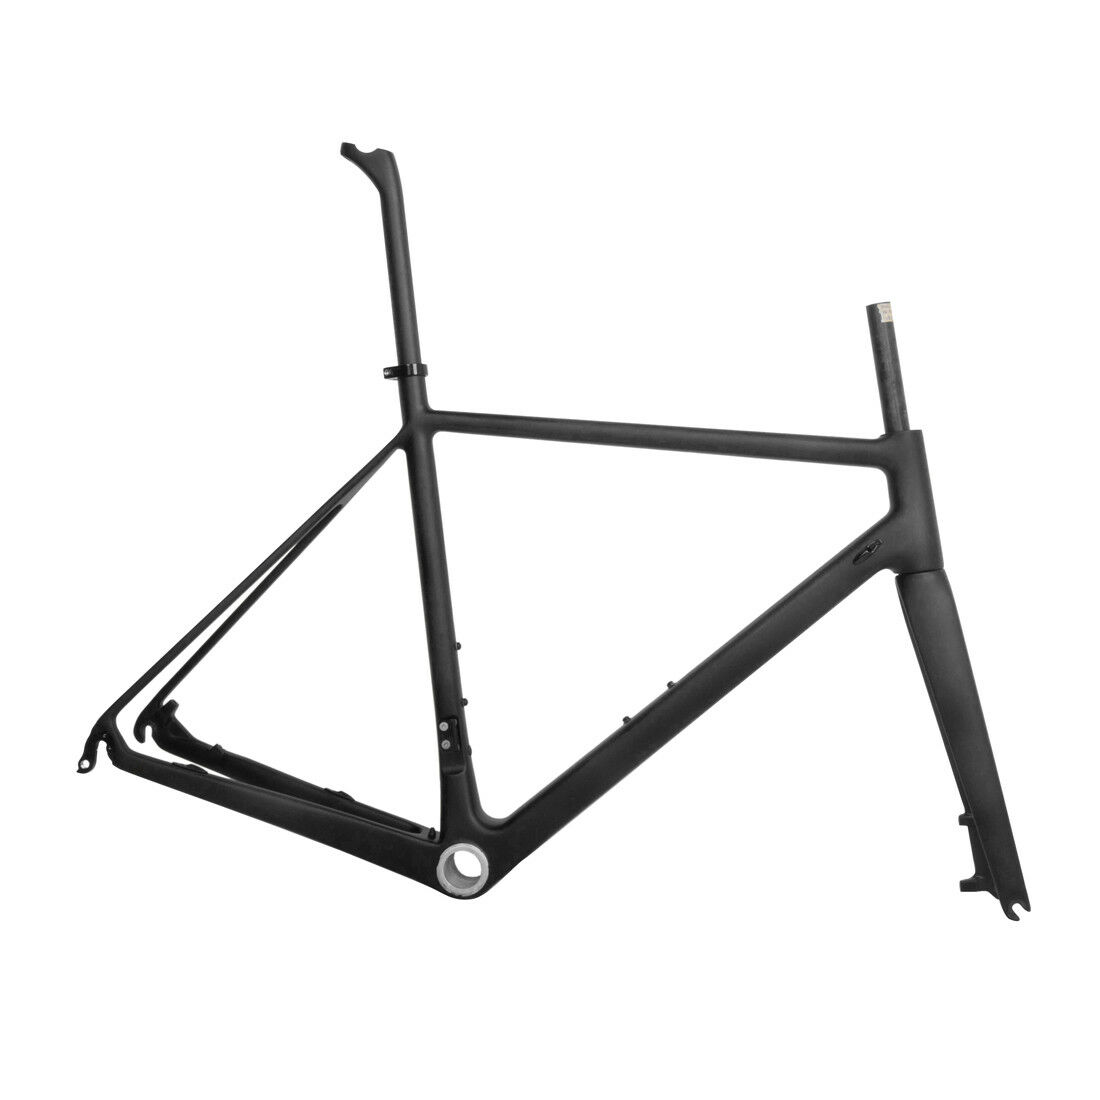 Carbon Bicycle Frame Fork Disc Brake Mount Road 700C Di2 UD 52cm Race cycle